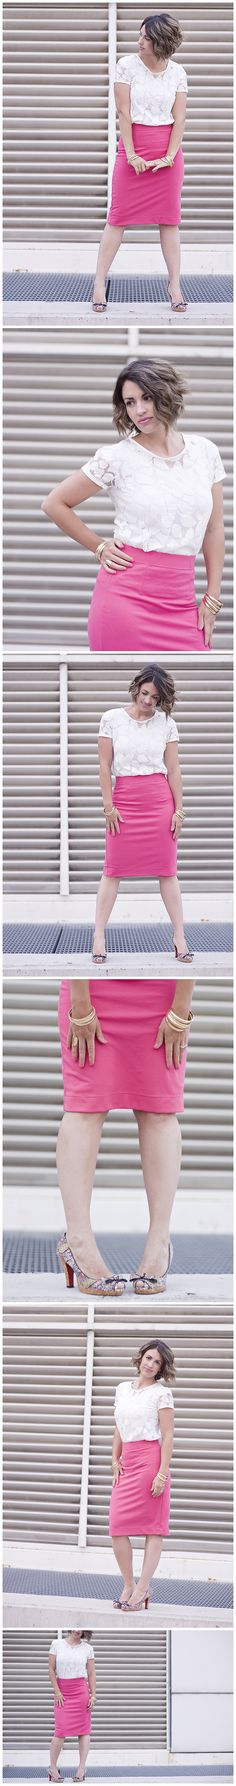 Pretty in Pink… Pencil Skirt | Fashion Friday mymommystyle.com